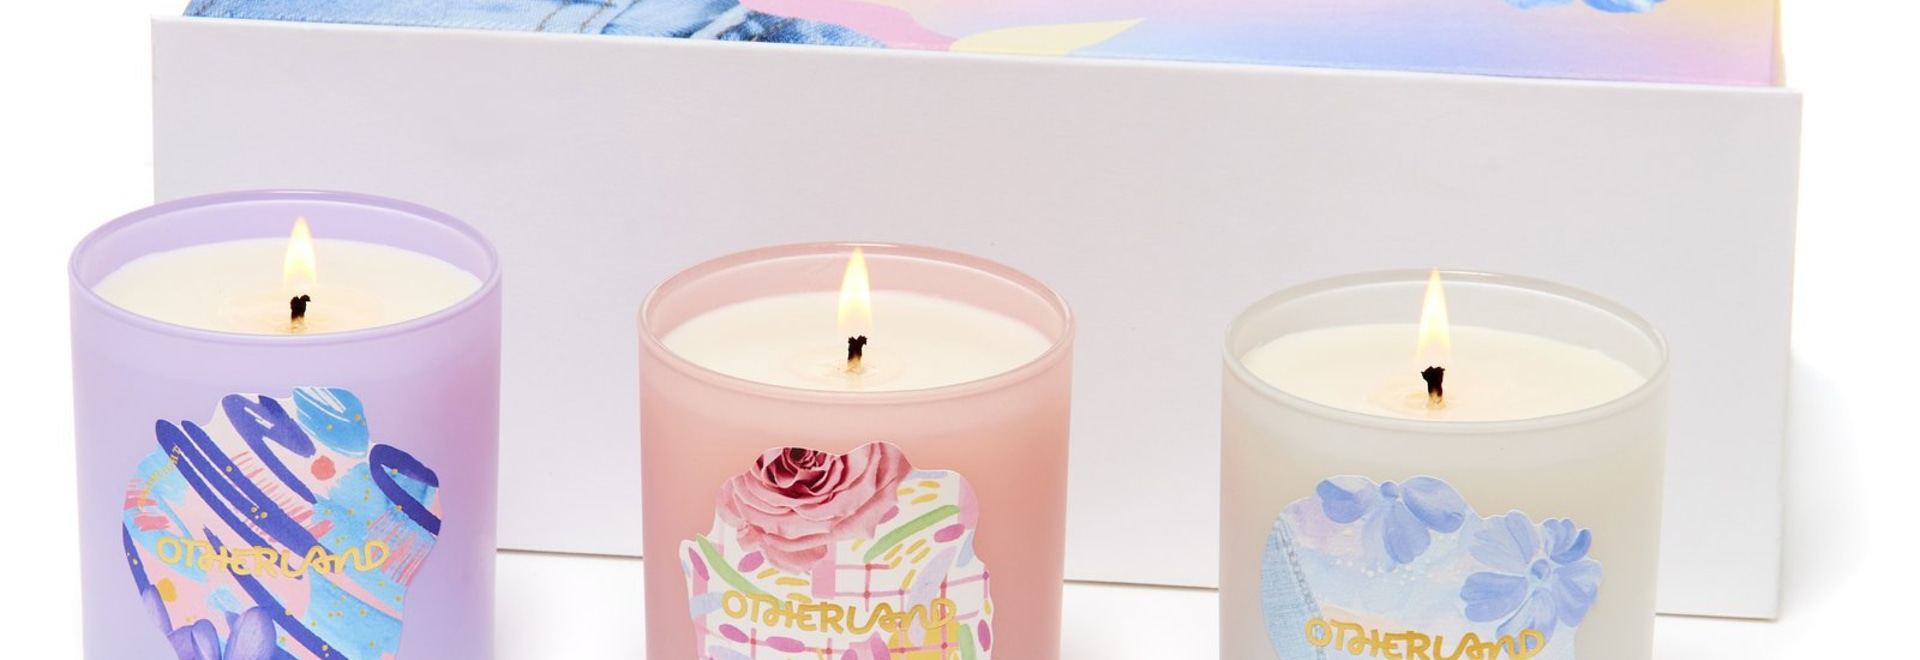 Time Travel Back to the '90s With Otherland's New Candle Collection